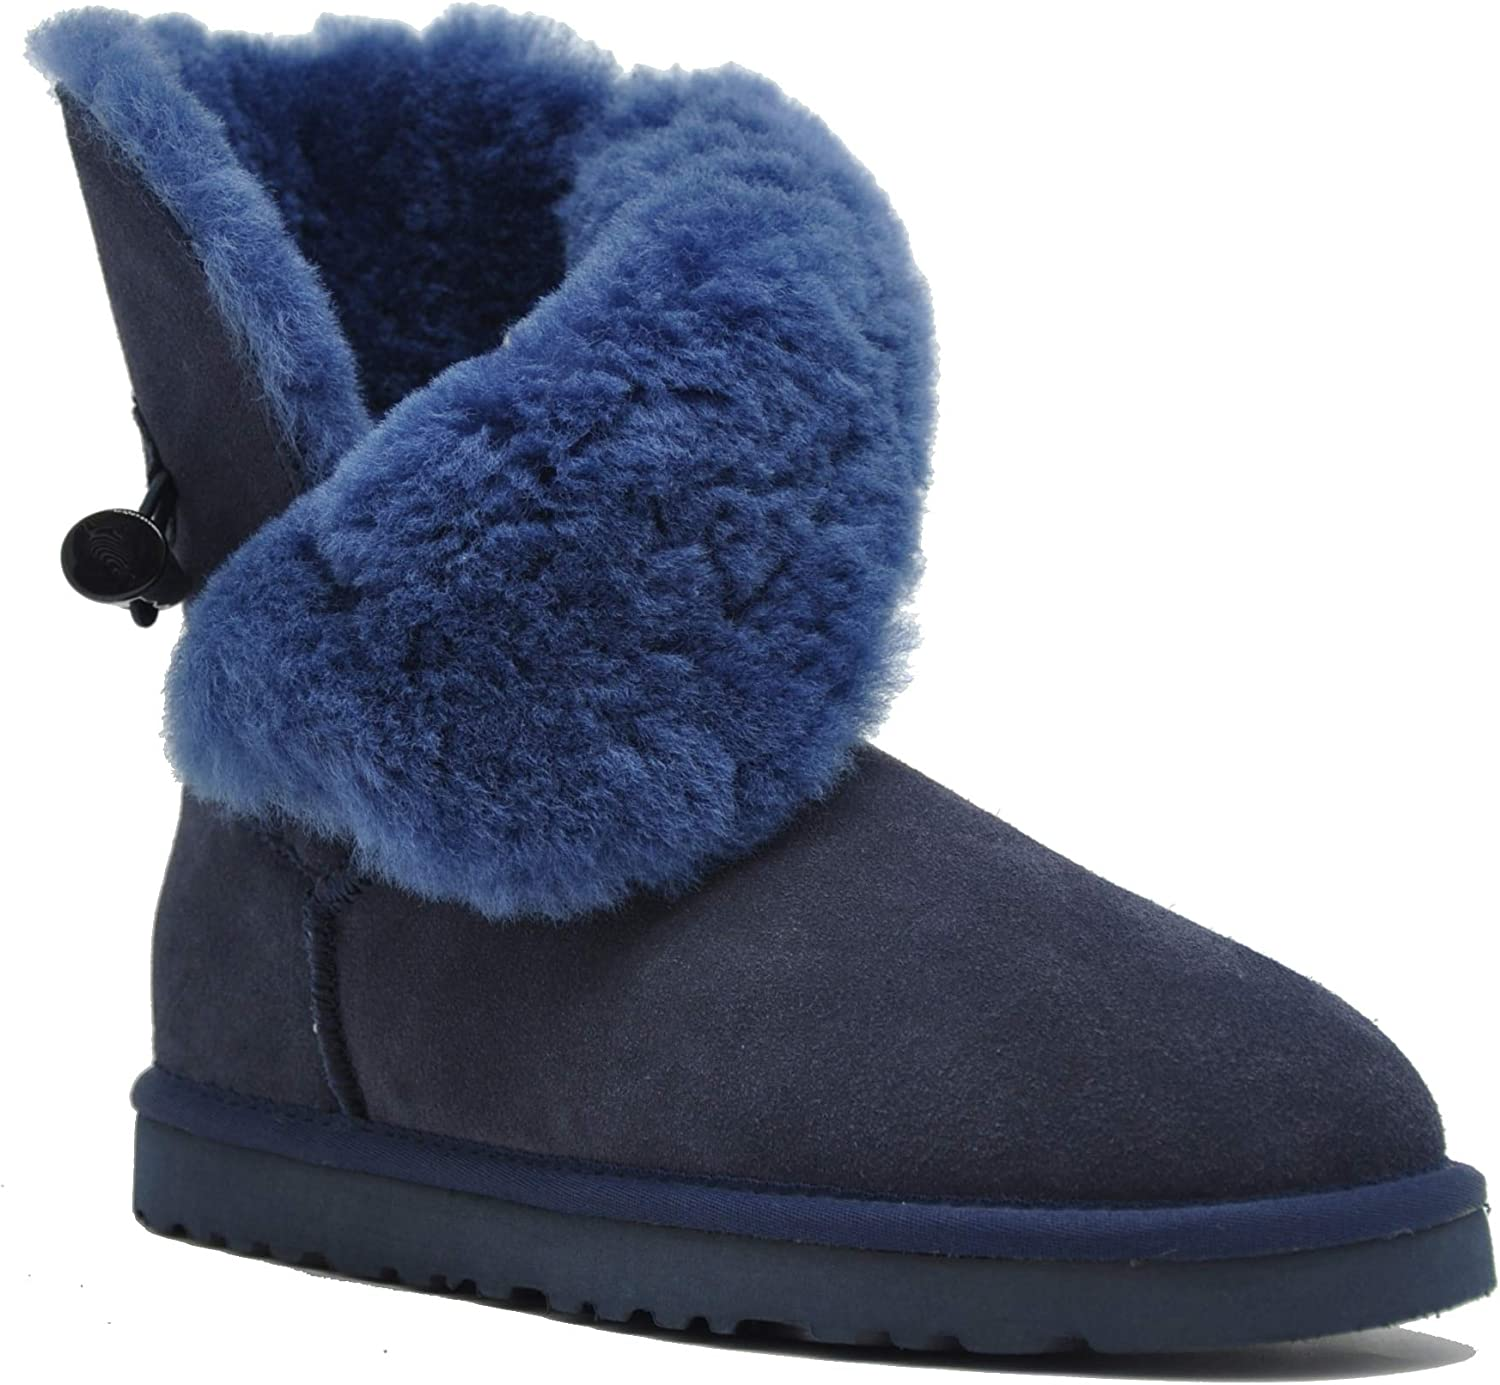 Fumak Lady shoes Waterproof Genuine Leather Snow Boots Natural Fur Winter Boots Warm Classic Women Boots